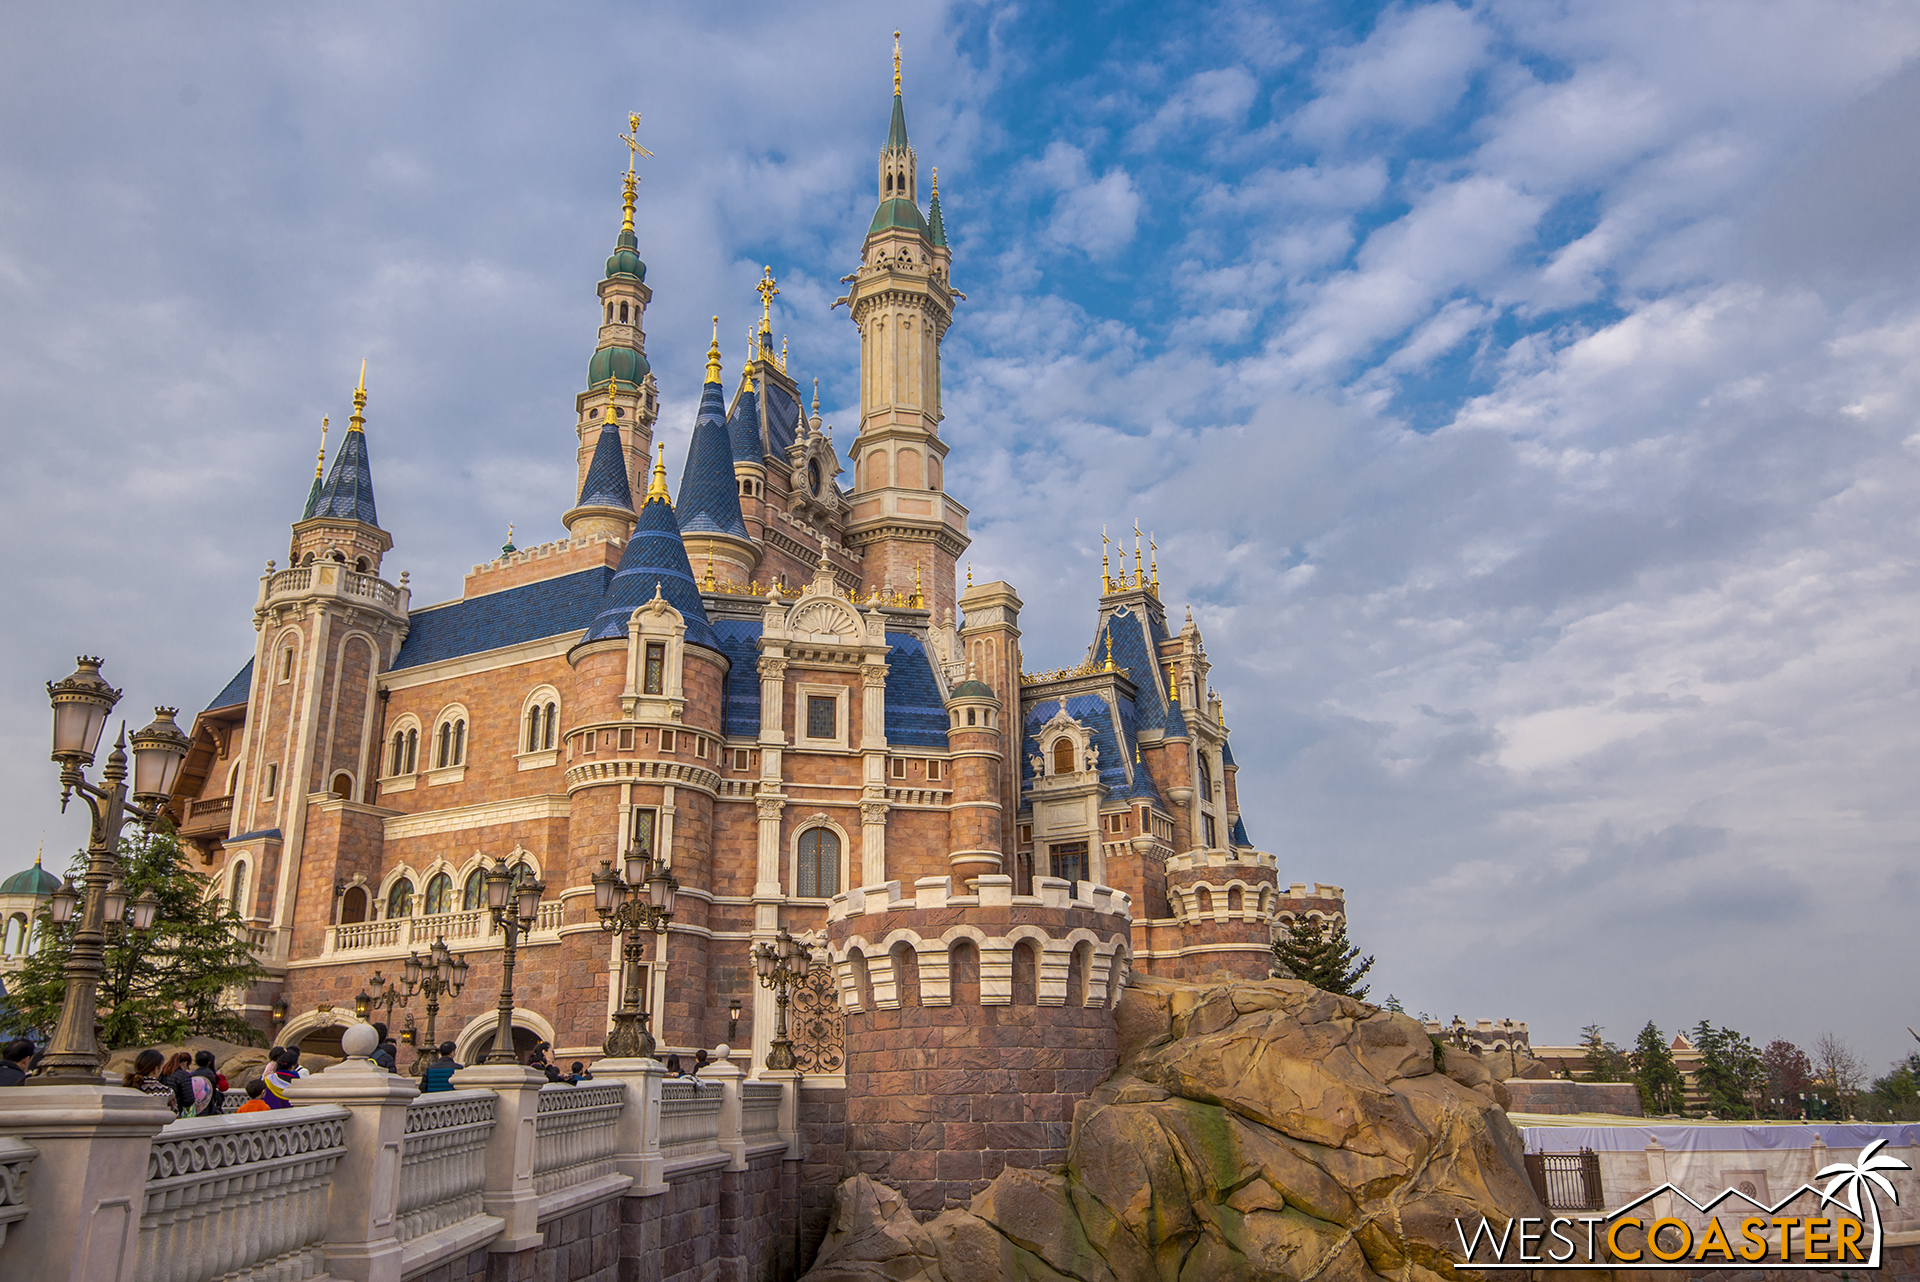 The Enchanted Storybook Castle during afternoon golden hour.